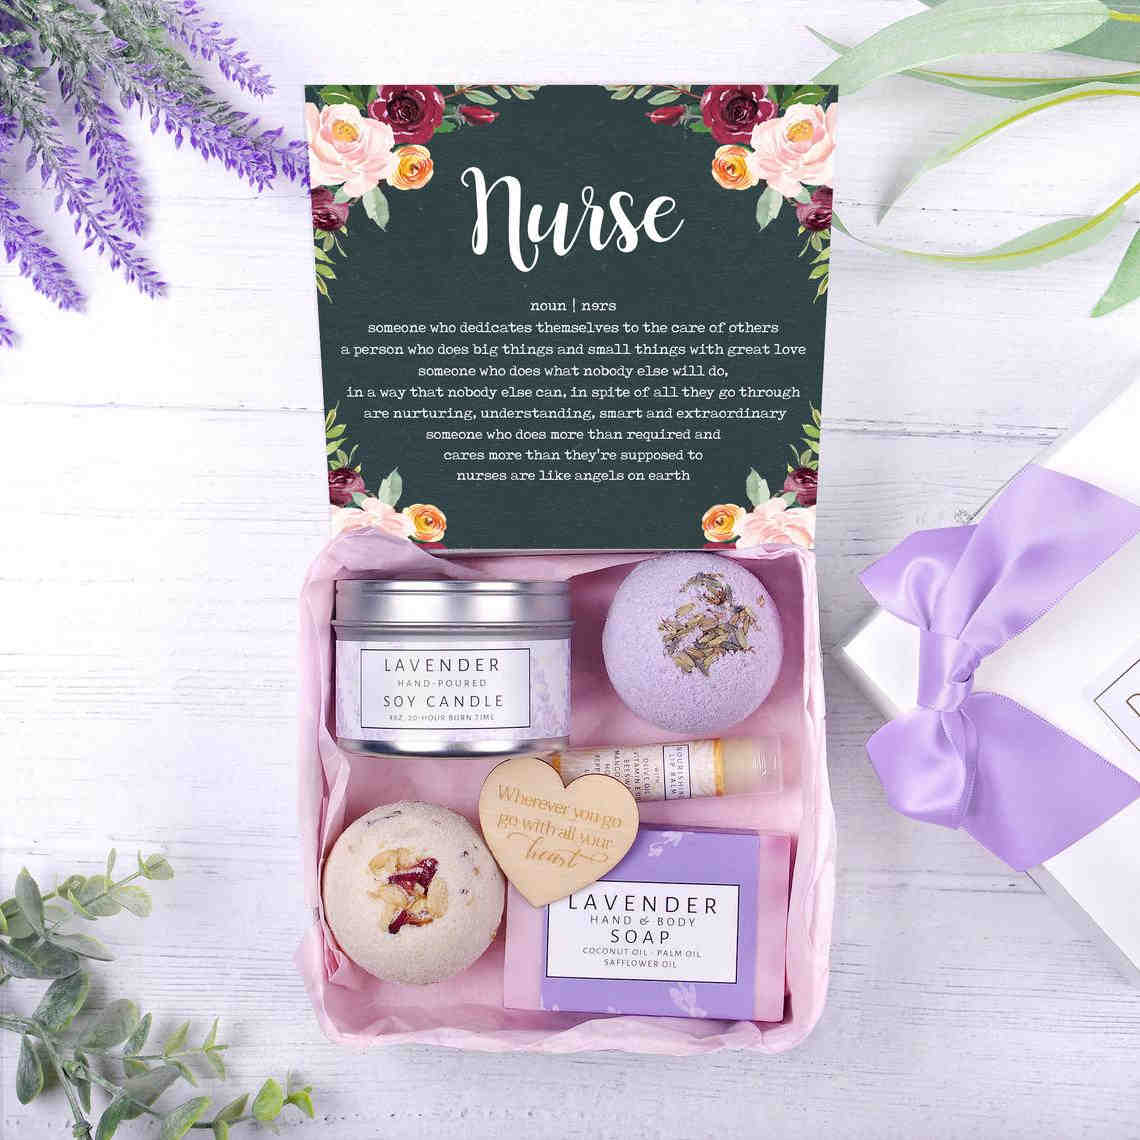 Spa gift set to take care of nurses